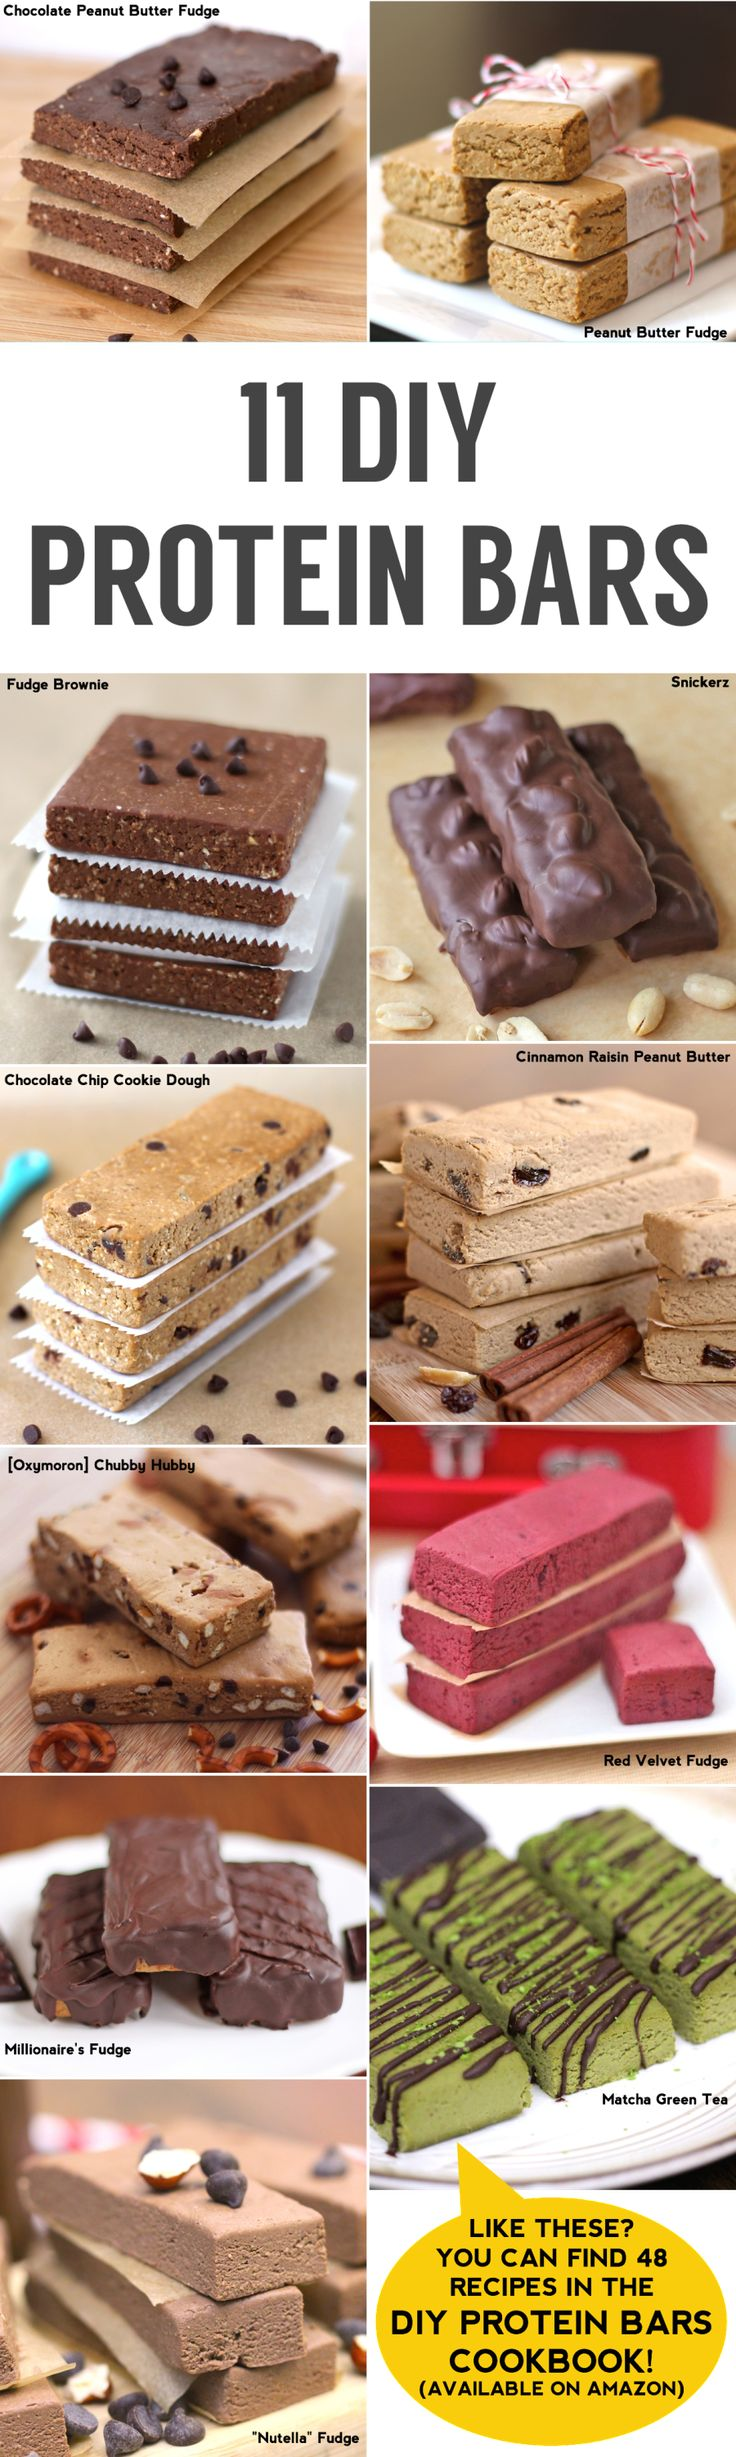 The ULTIMATE DIY Roundup! 43 Healthy DIY Recipes — Nut Butters, Candy Bars and More!